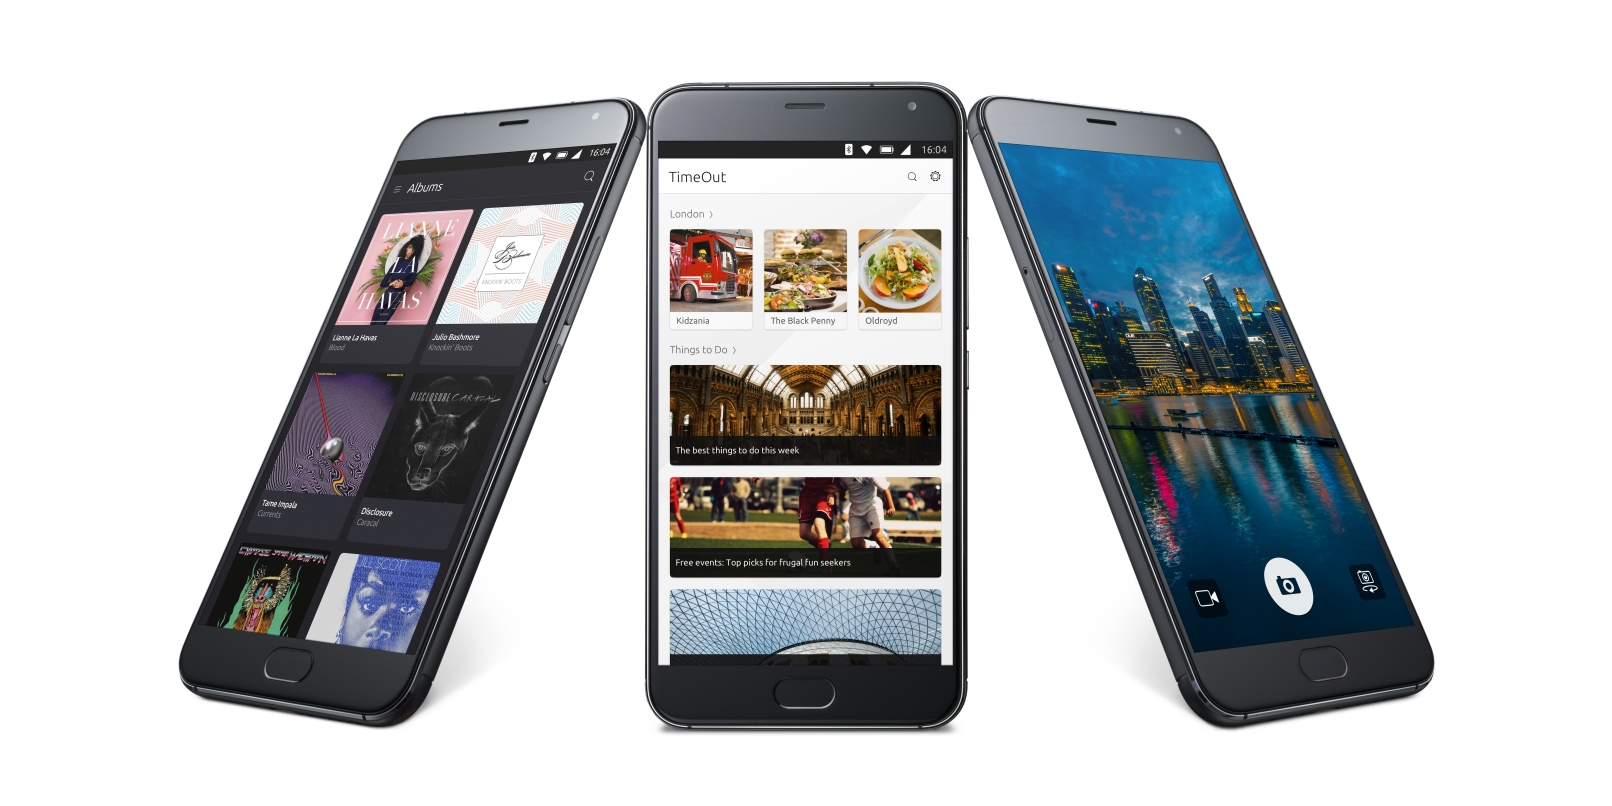 First flagship Ubuntu phone now available to buy, but you won't